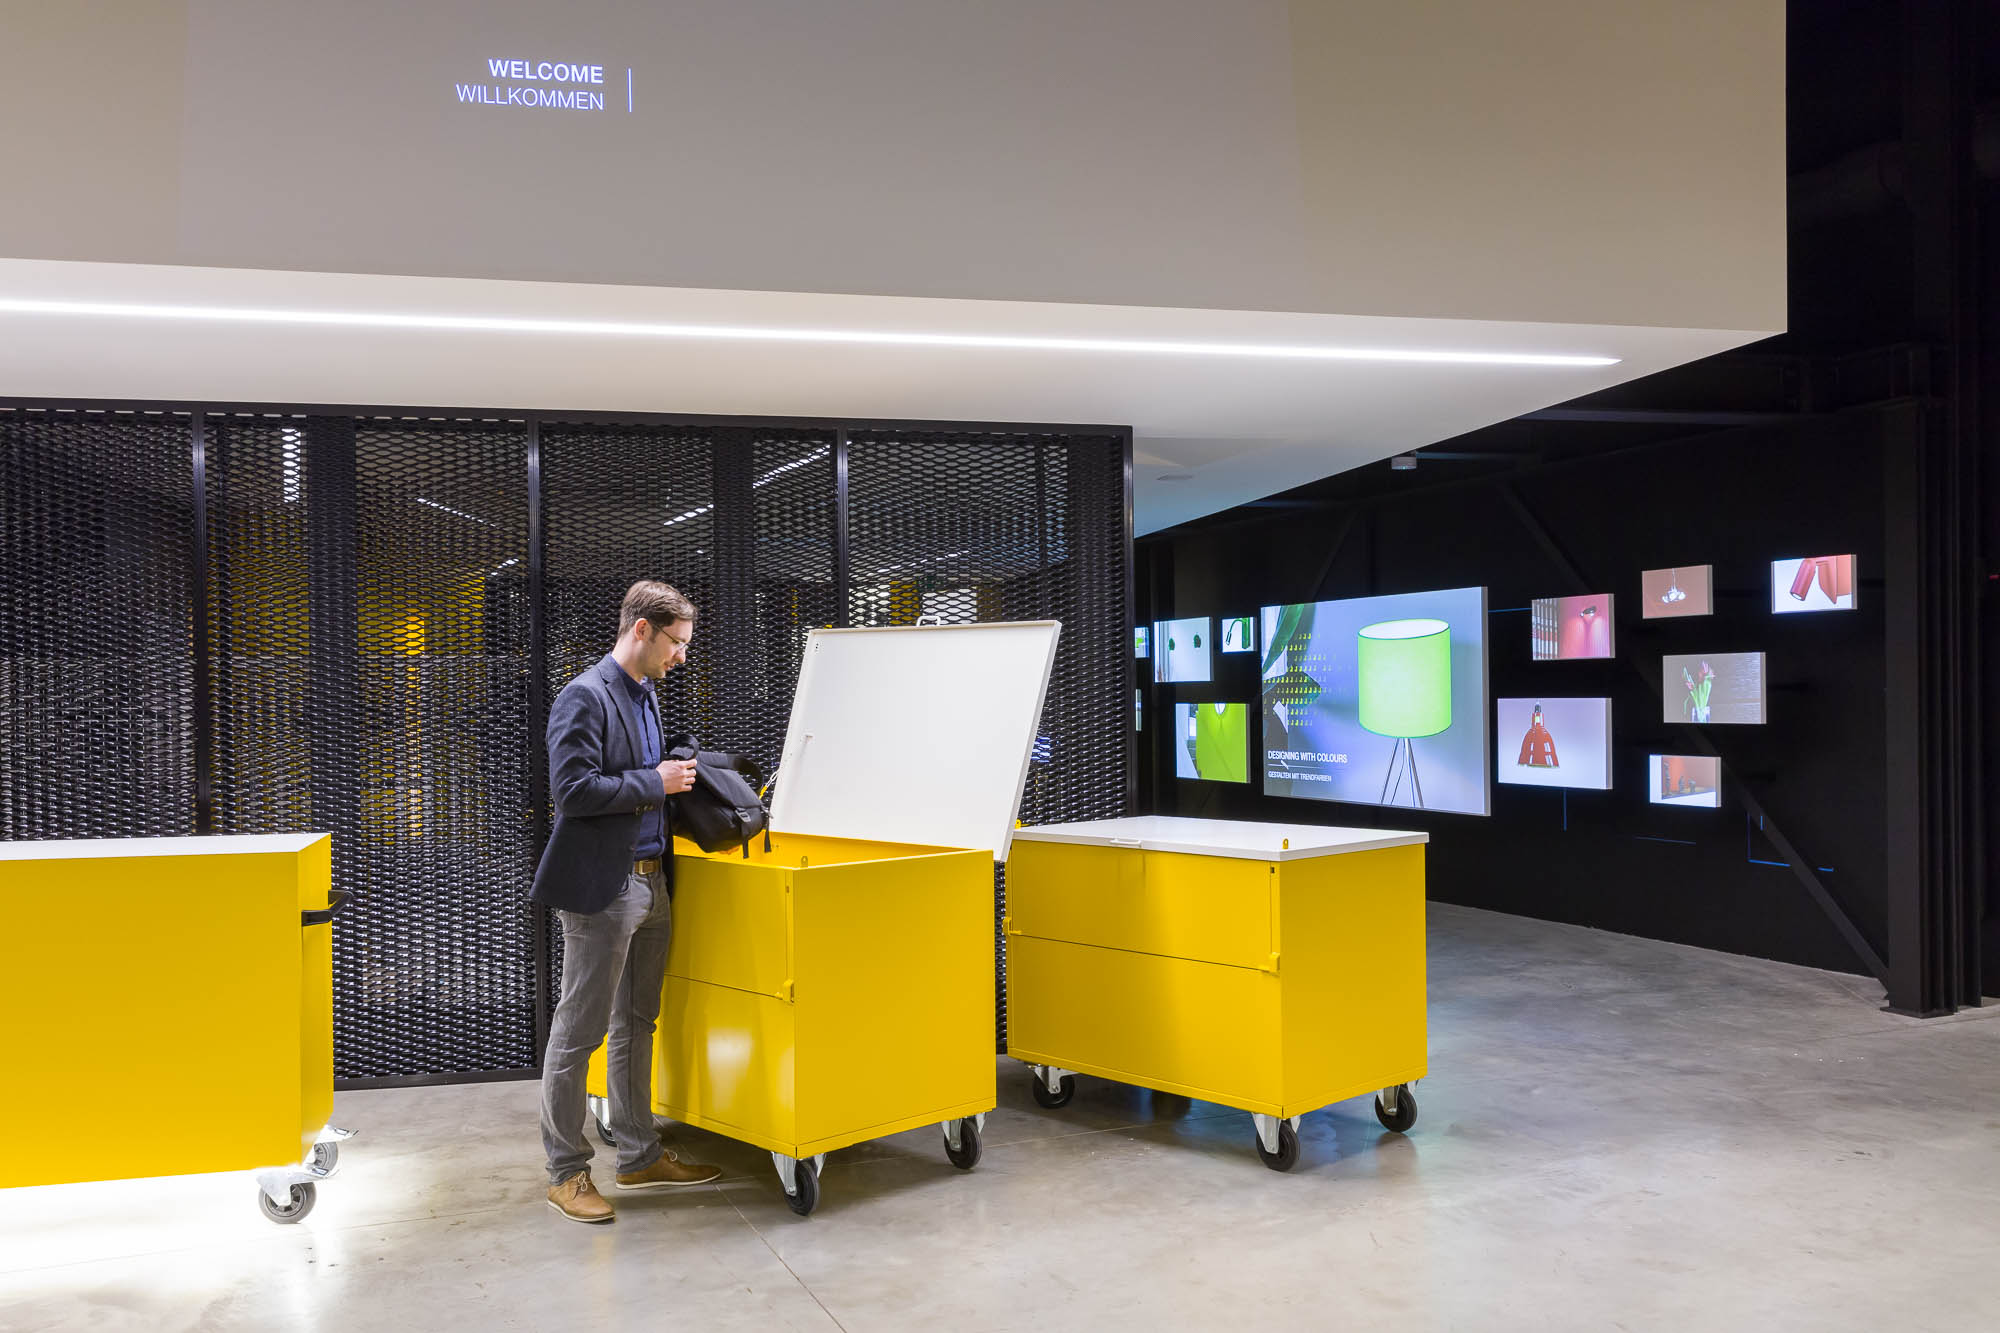 Welcome Area with movable yellow trolleys, which offer additional storage space and space for exchanges